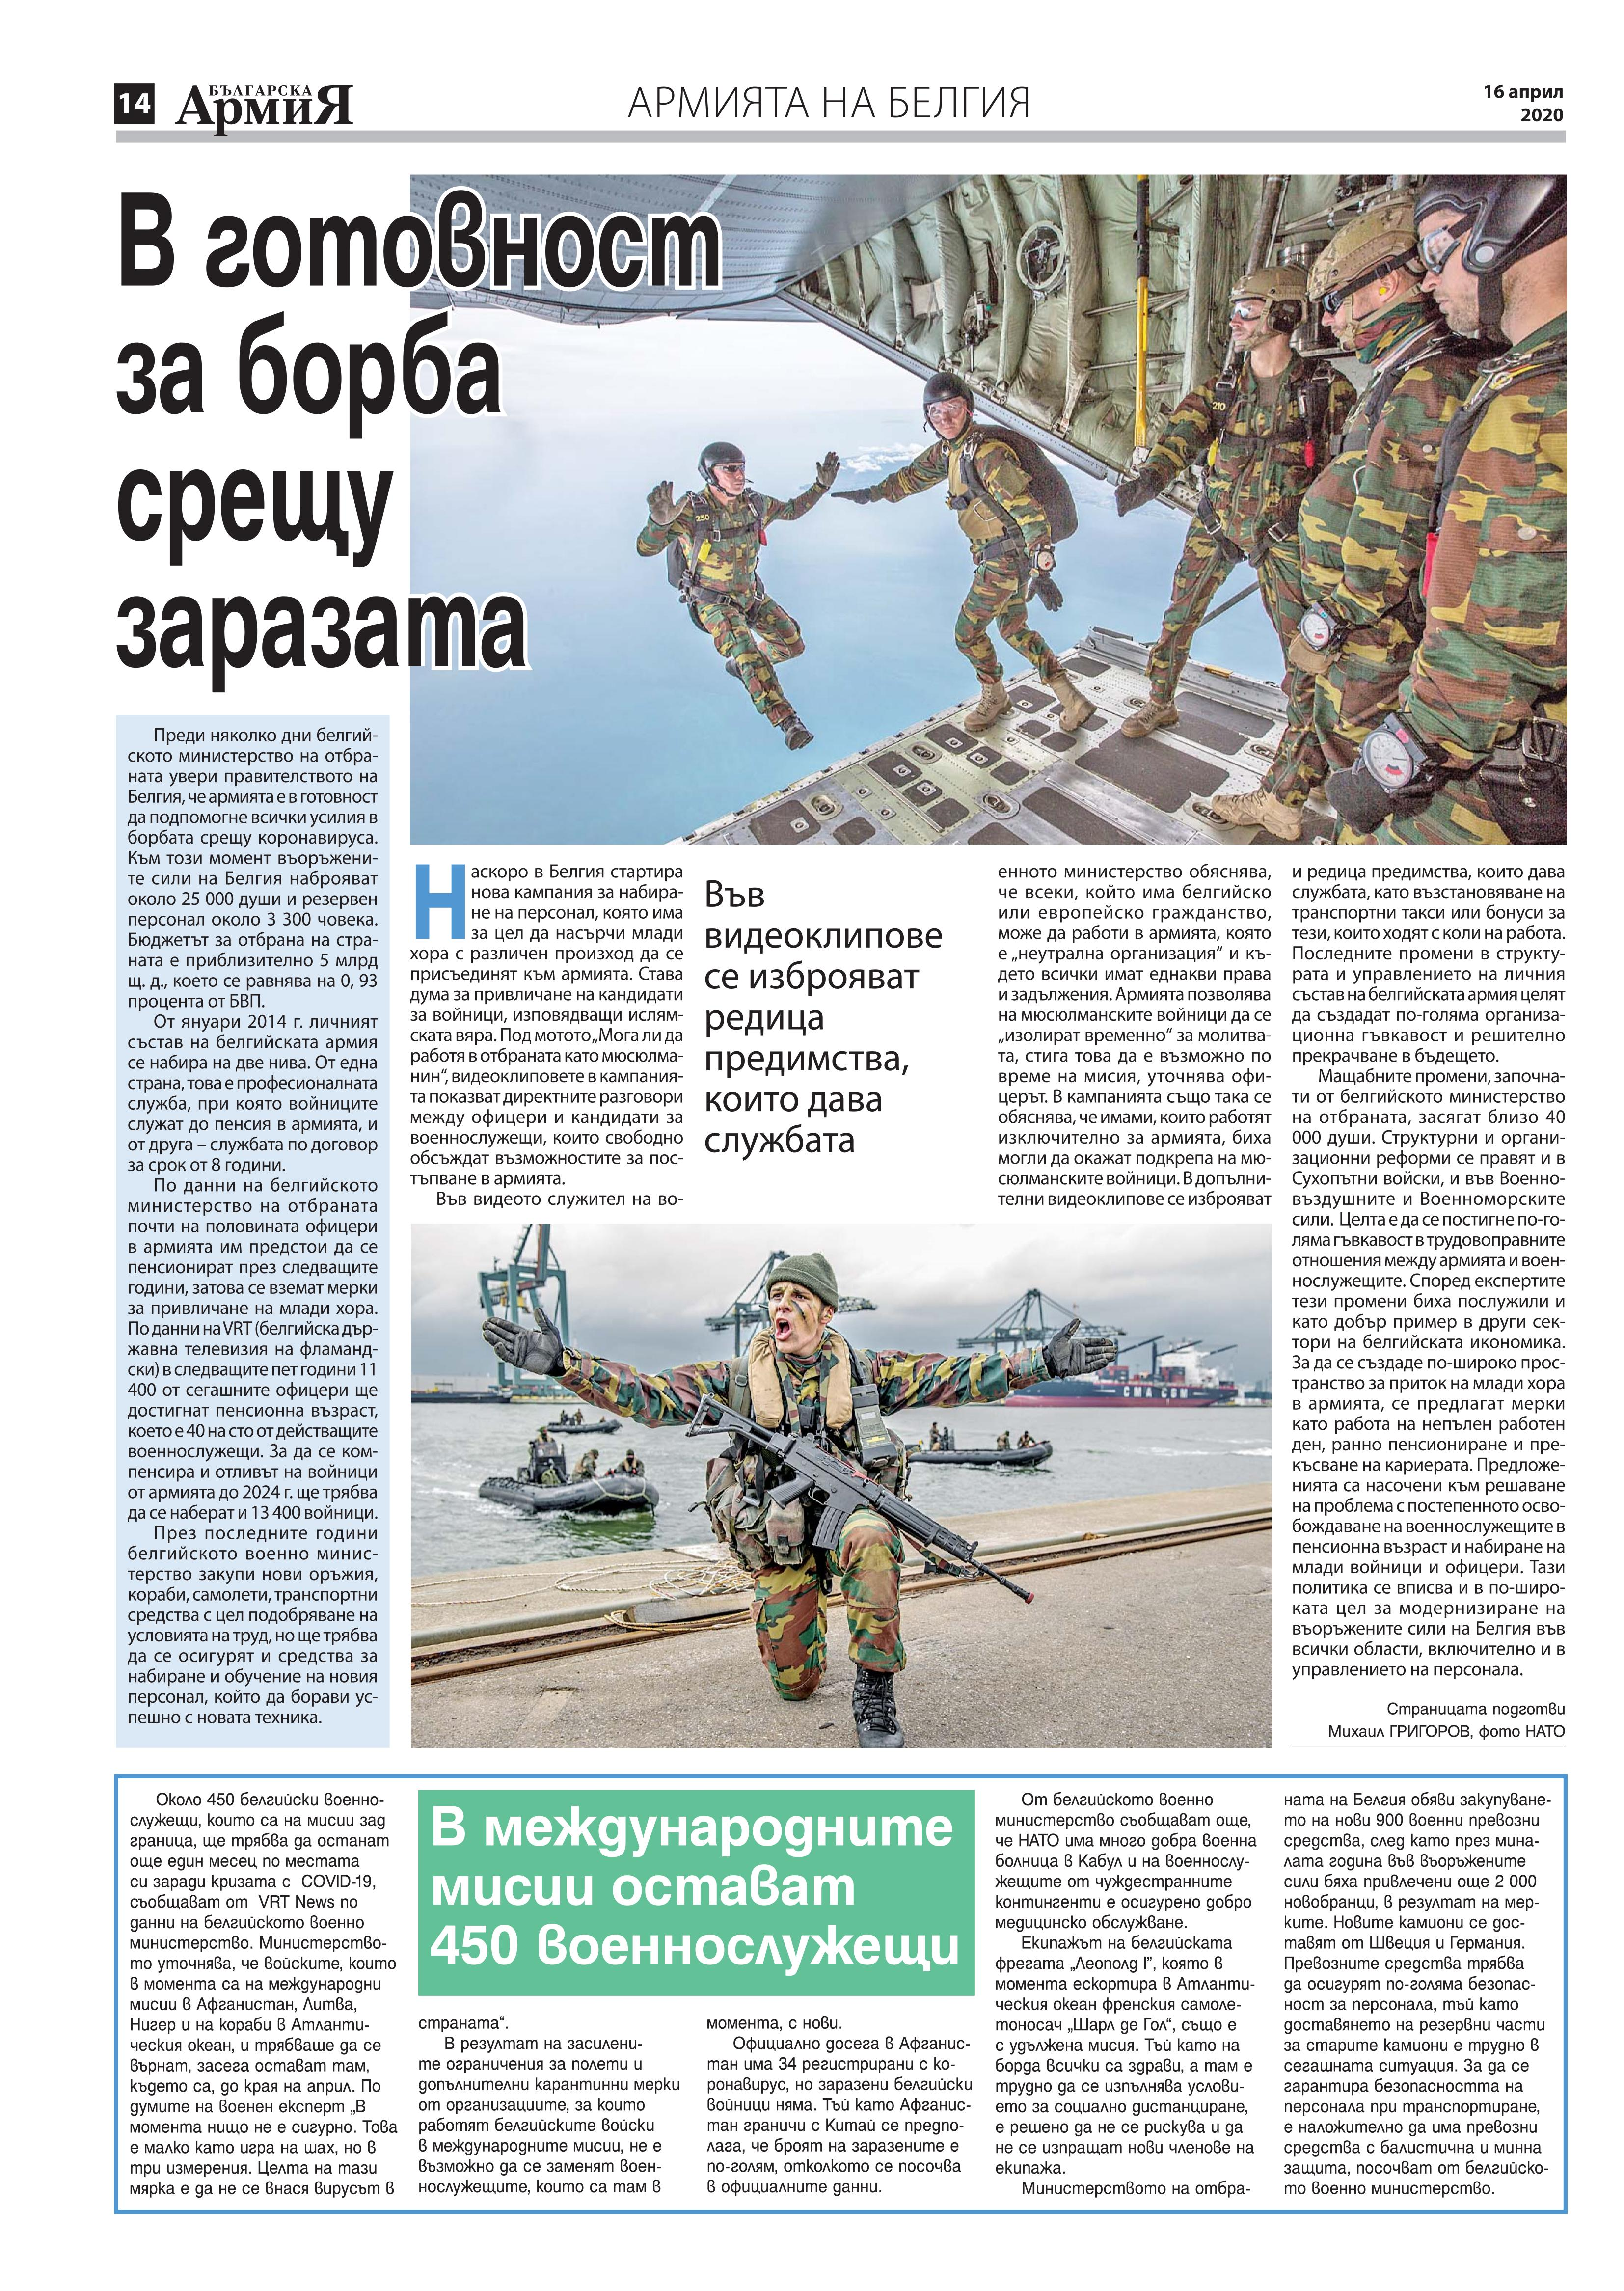 https://armymedia.bg/wp-content/uploads/2015/06/14.page1_-135.jpg